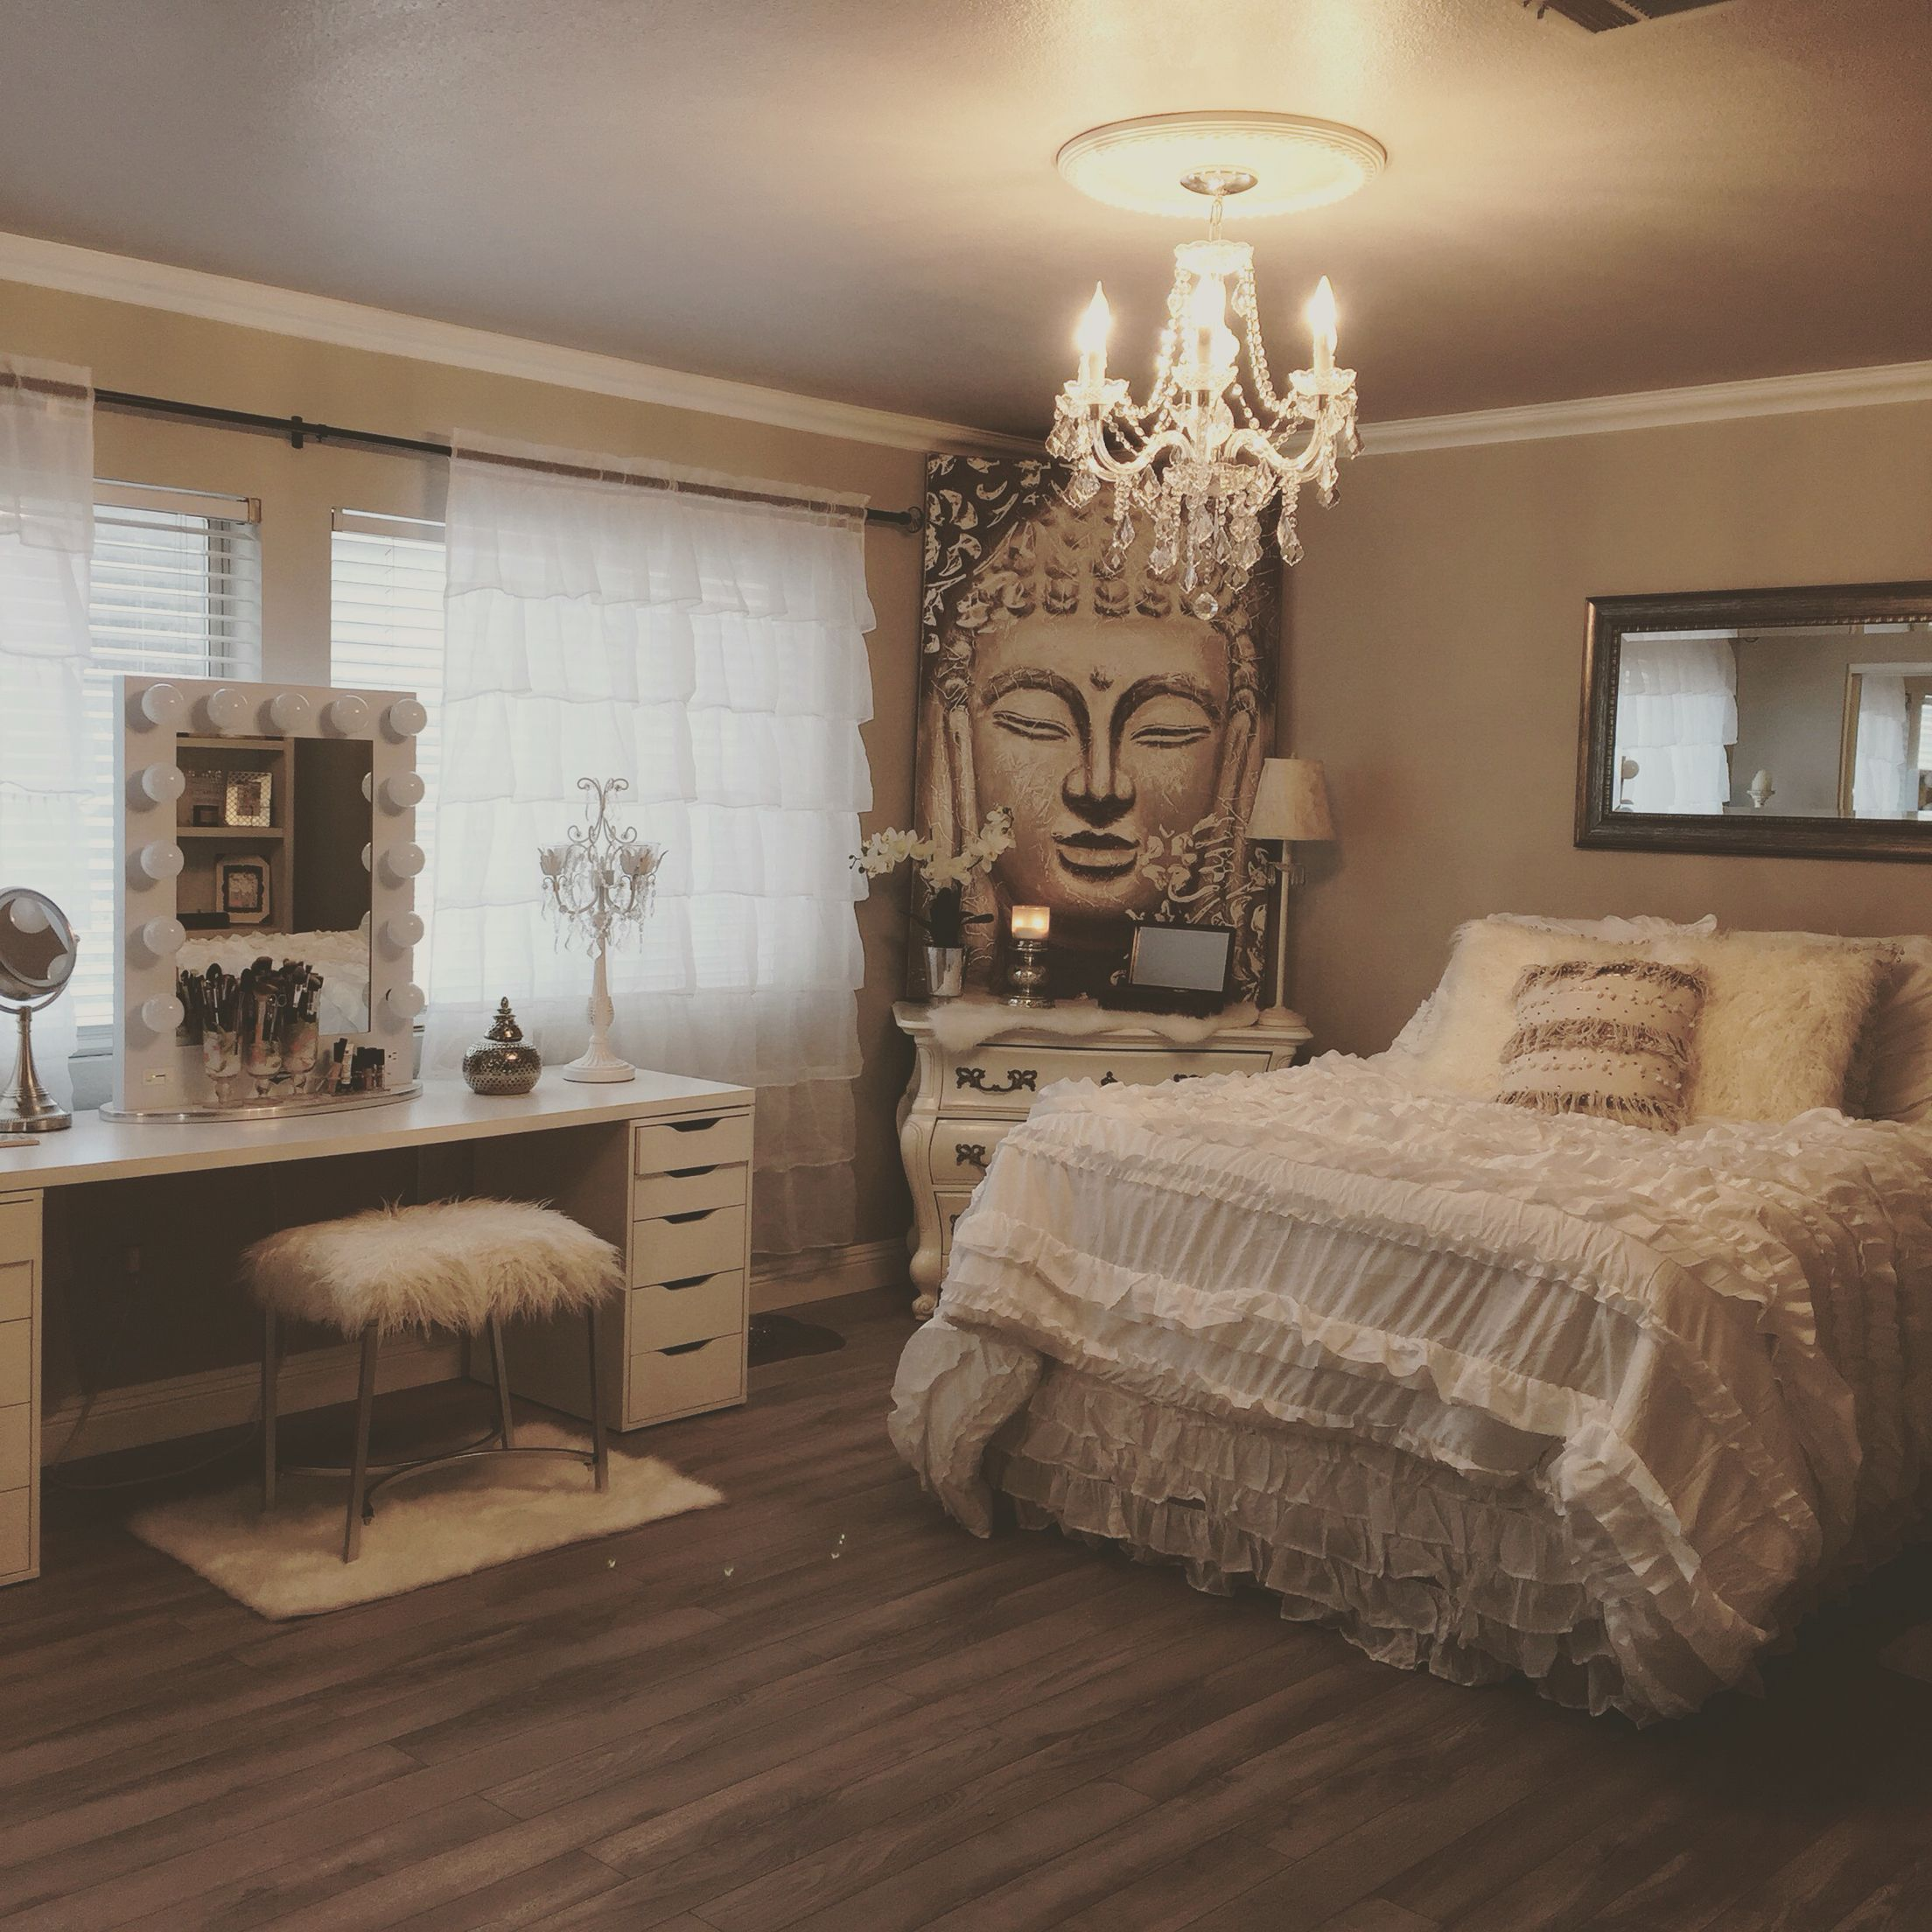 Shabby chic meets zen glam my new bedroom pinterest for Bedroom designs on pinterest